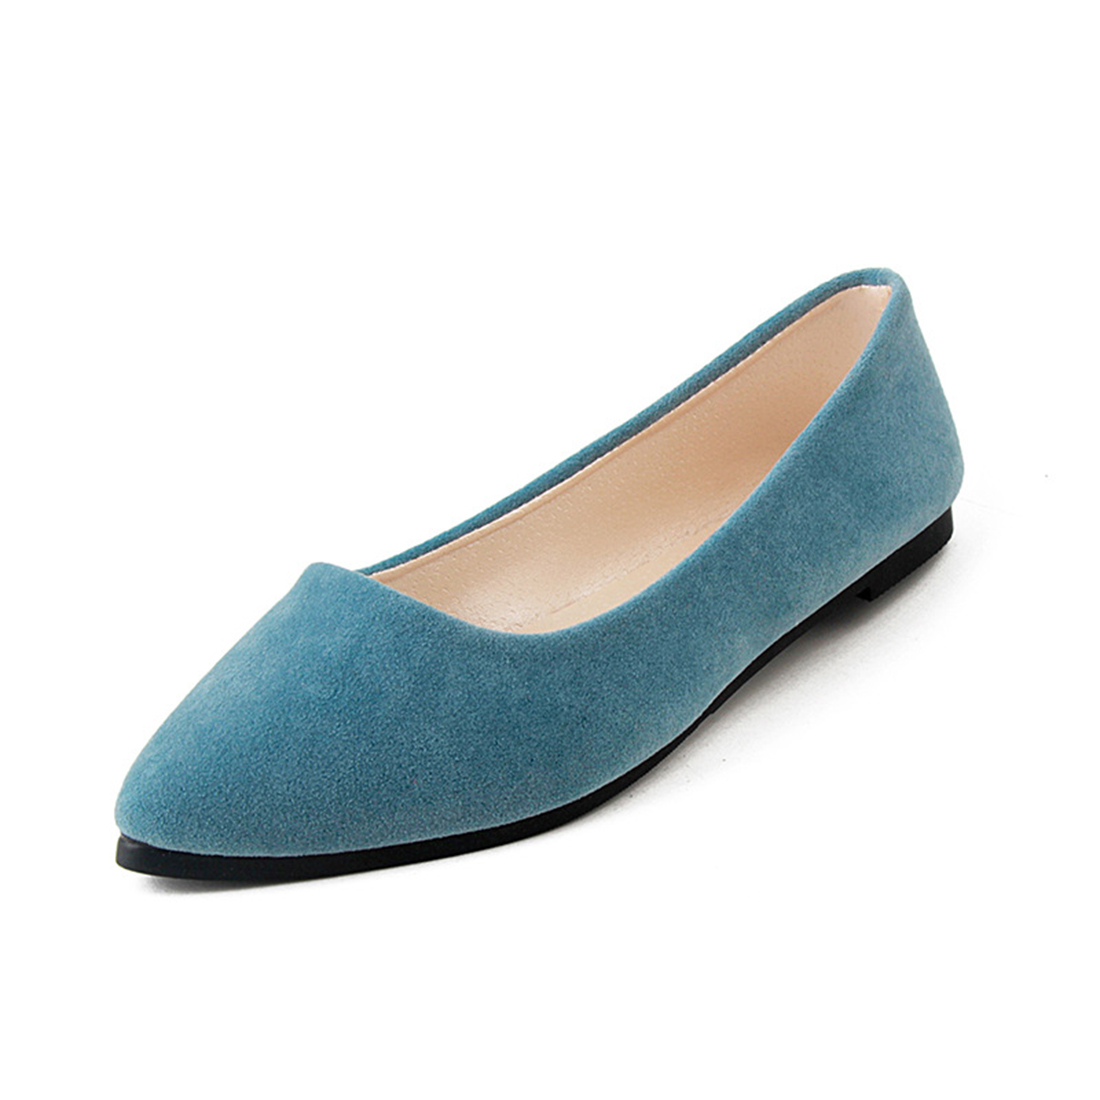 2017 Spring New Women Solid Slip On Casual Shoes Comfortable Pointed Toe Female Flat Shoes Woman Loafers Plus Size 40 2017 spring summer new women casual pointed toe loafers flats ballet ballerina flat shoes plus size 34 43